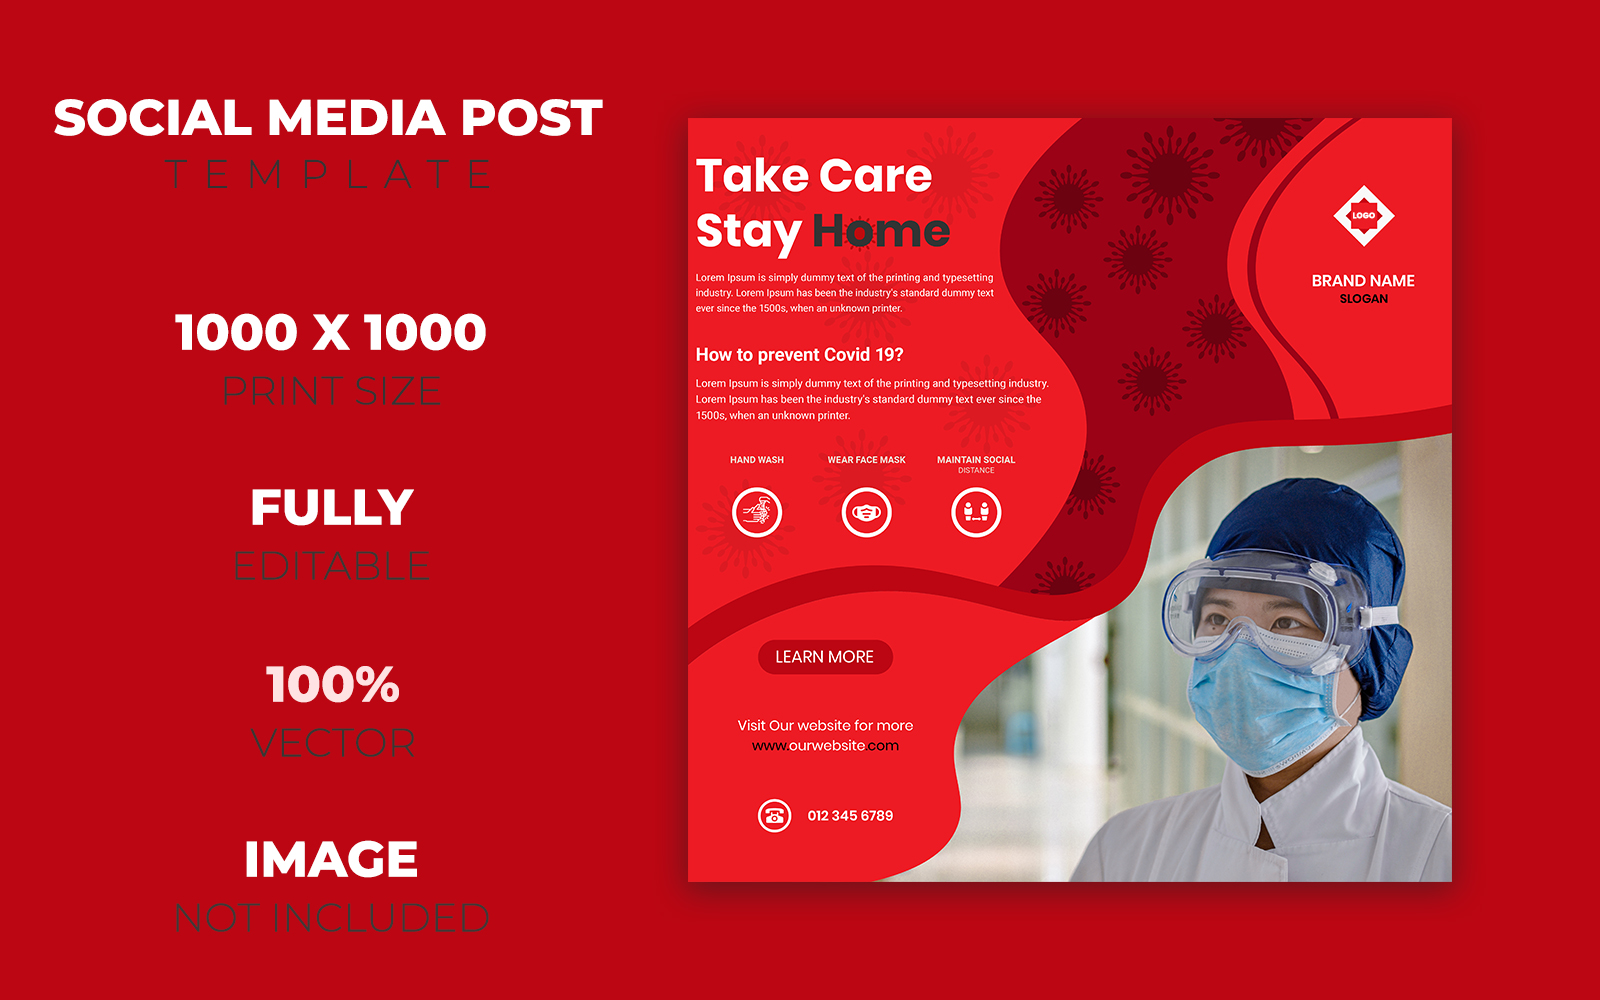 Corona Virus Covid-19 Prevention Social Media Post Design Corporate Identity Template